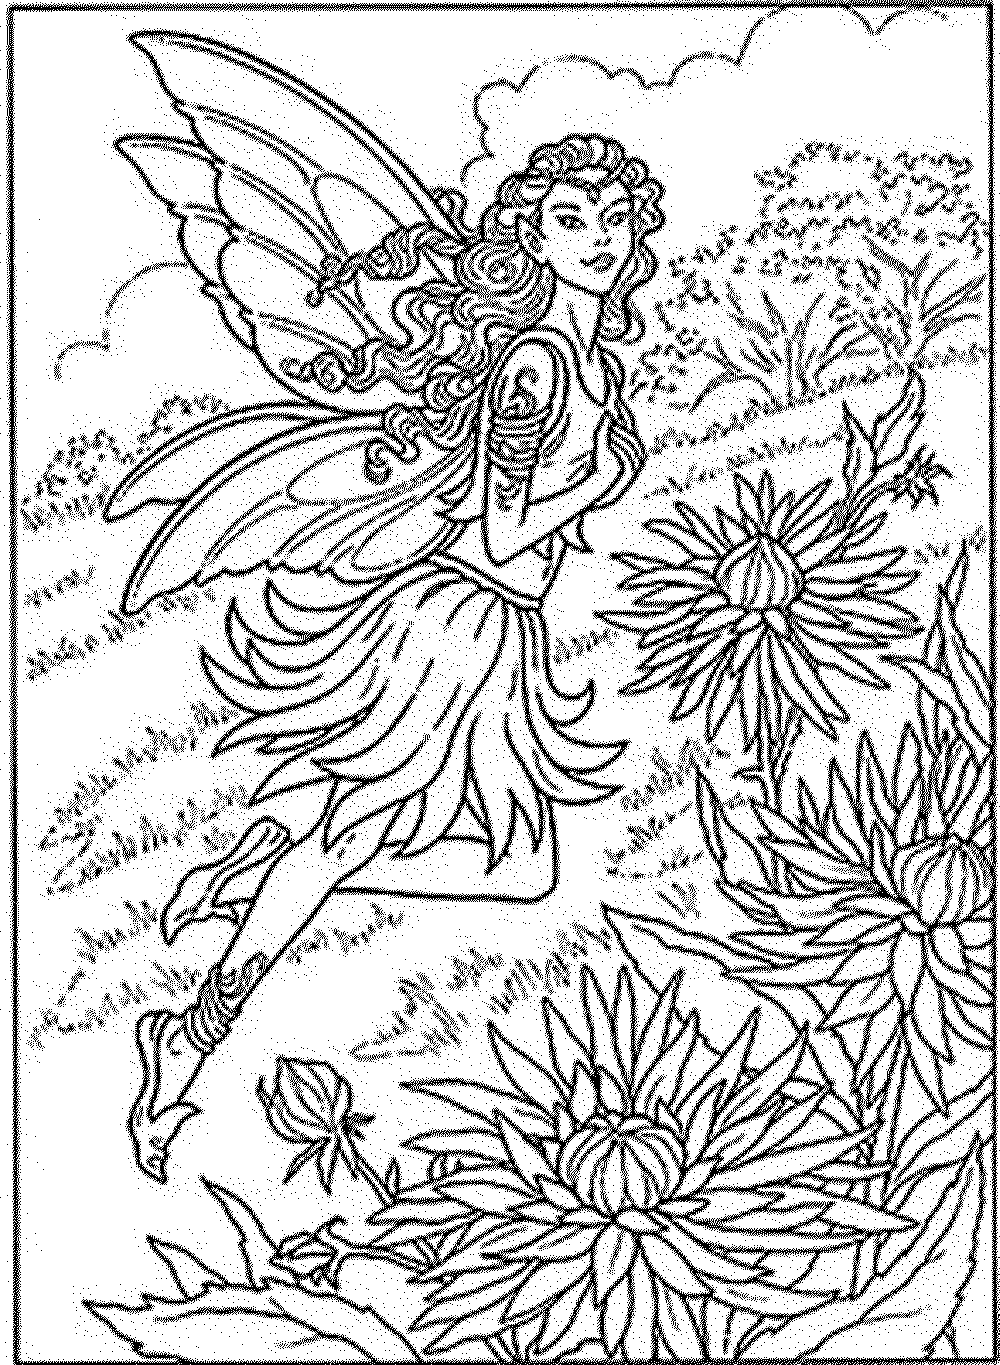 Coloring Pages For Adults Difficult Fairies : Intricate Coloring Pages For Adults Coloring Home